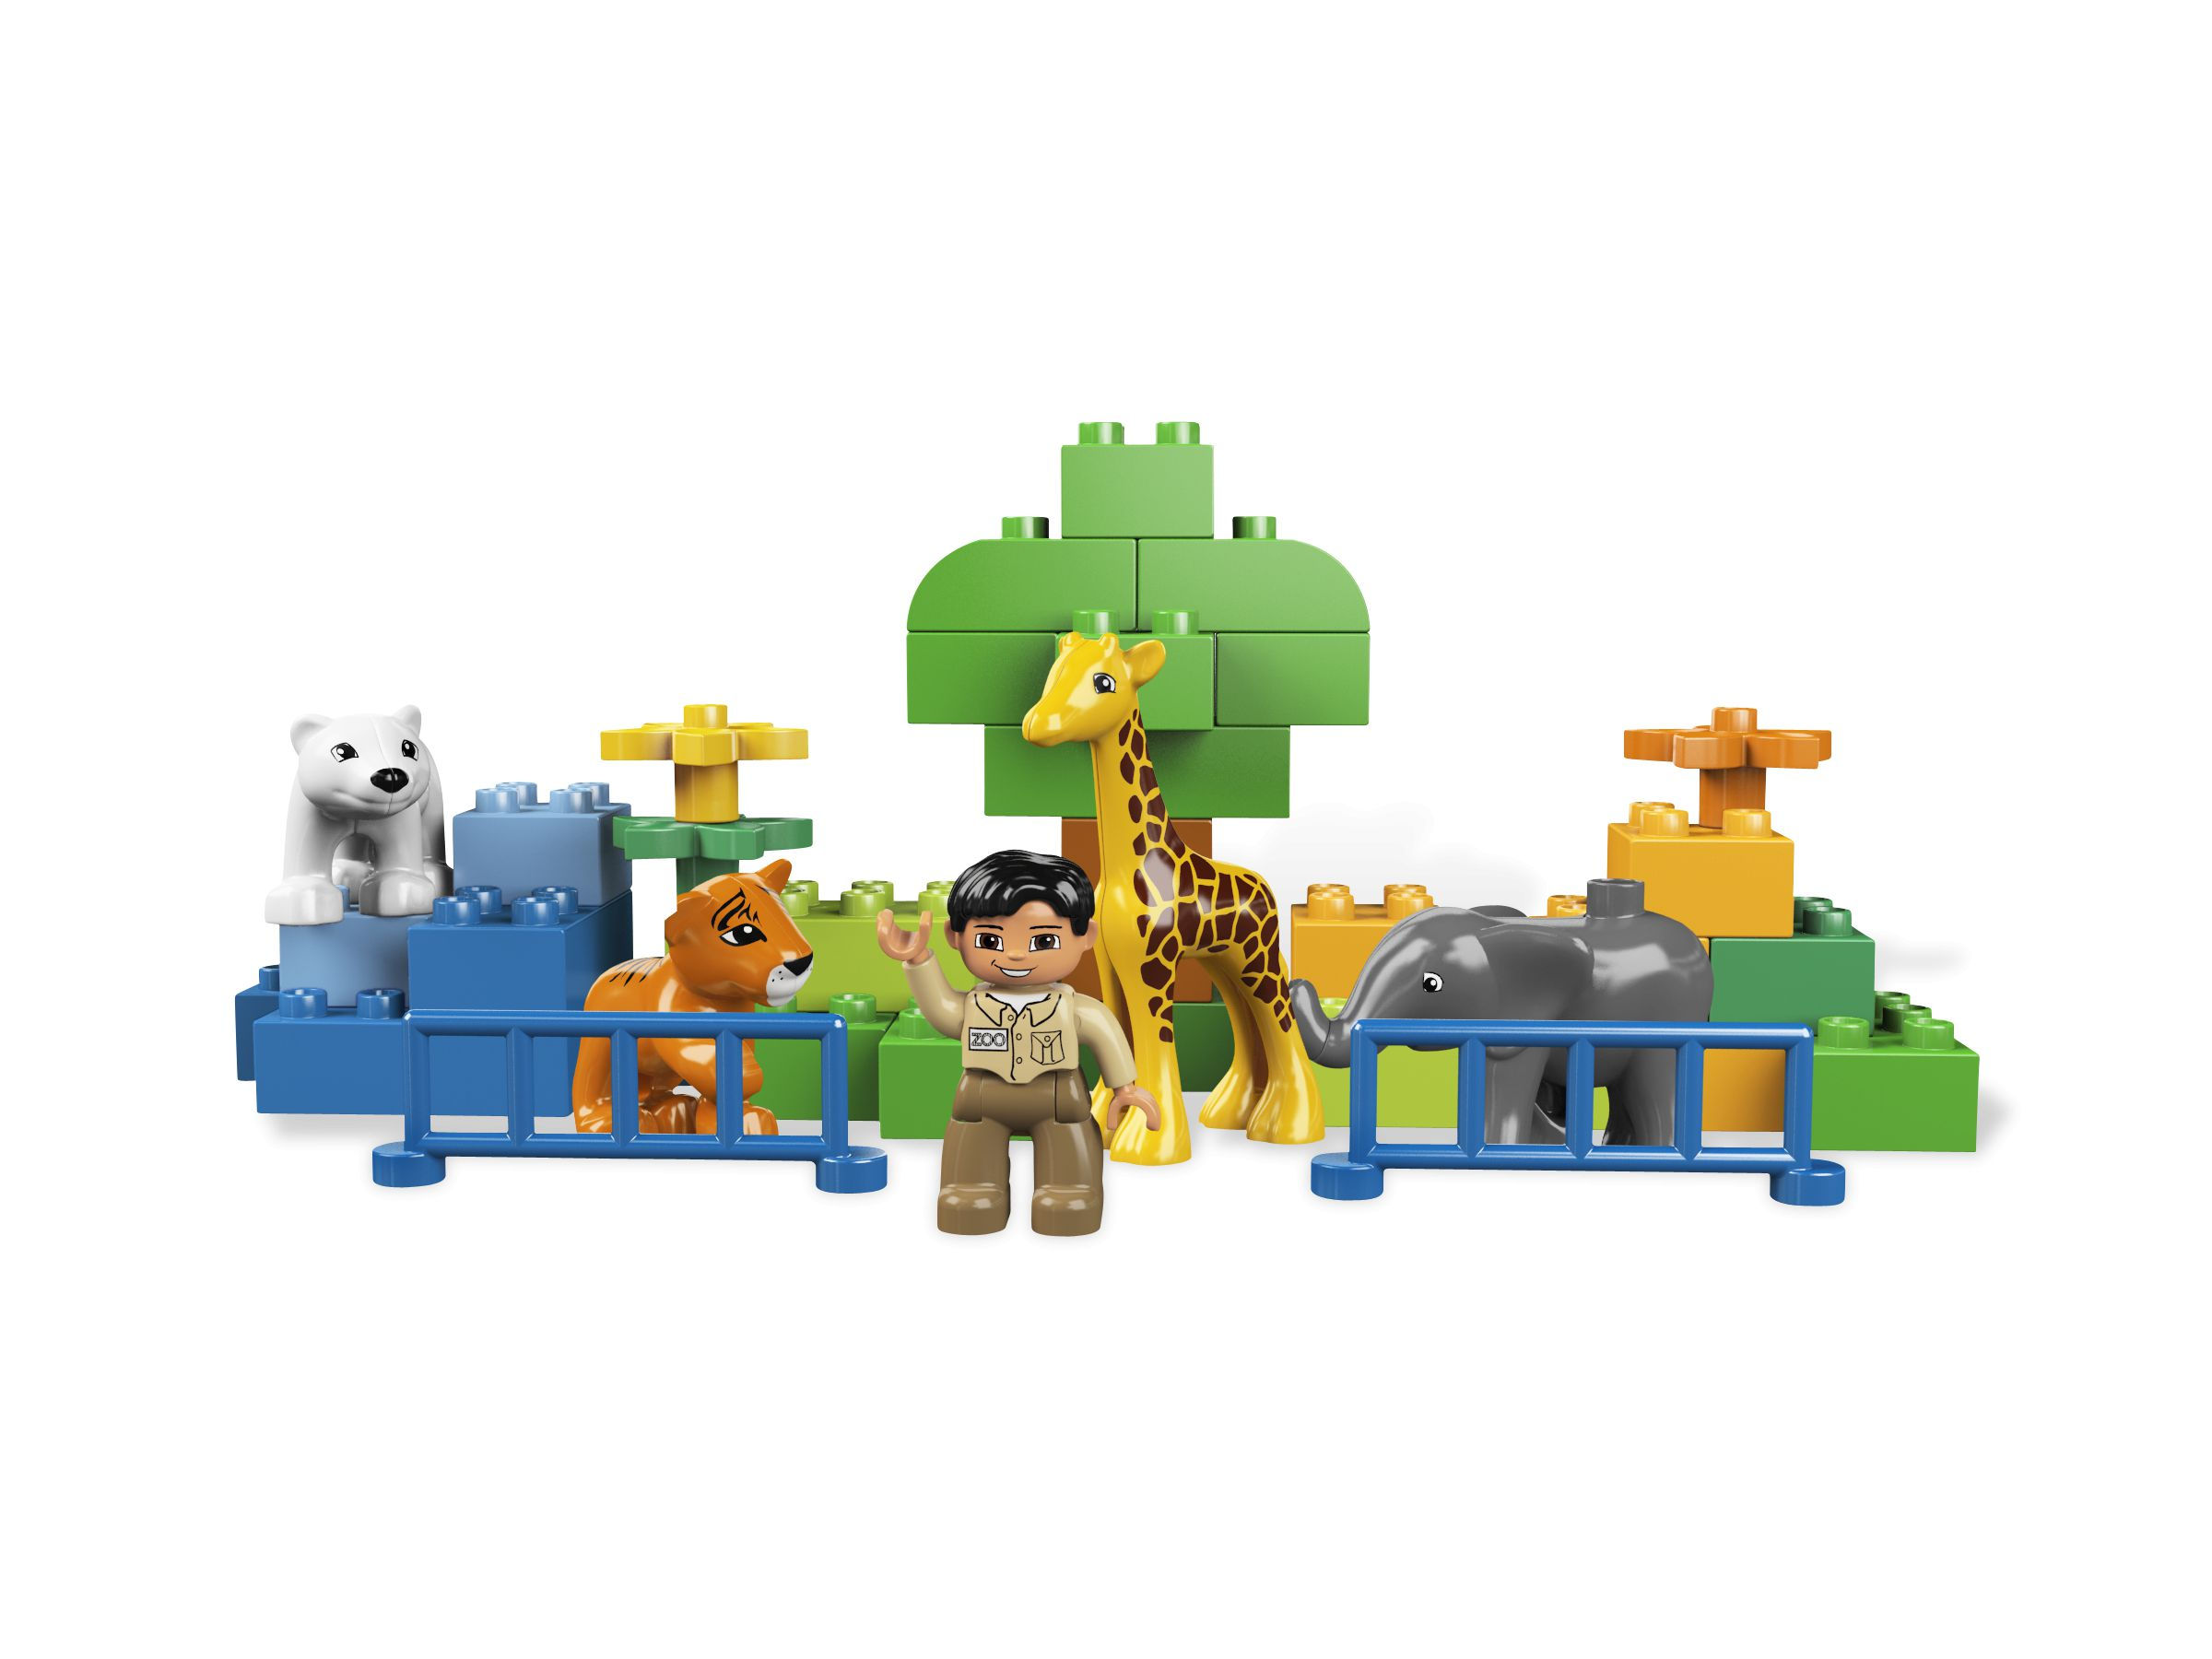 lego 6136 mein erster zoo duplo 2011 my first zoo brickmerge. Black Bedroom Furniture Sets. Home Design Ideas